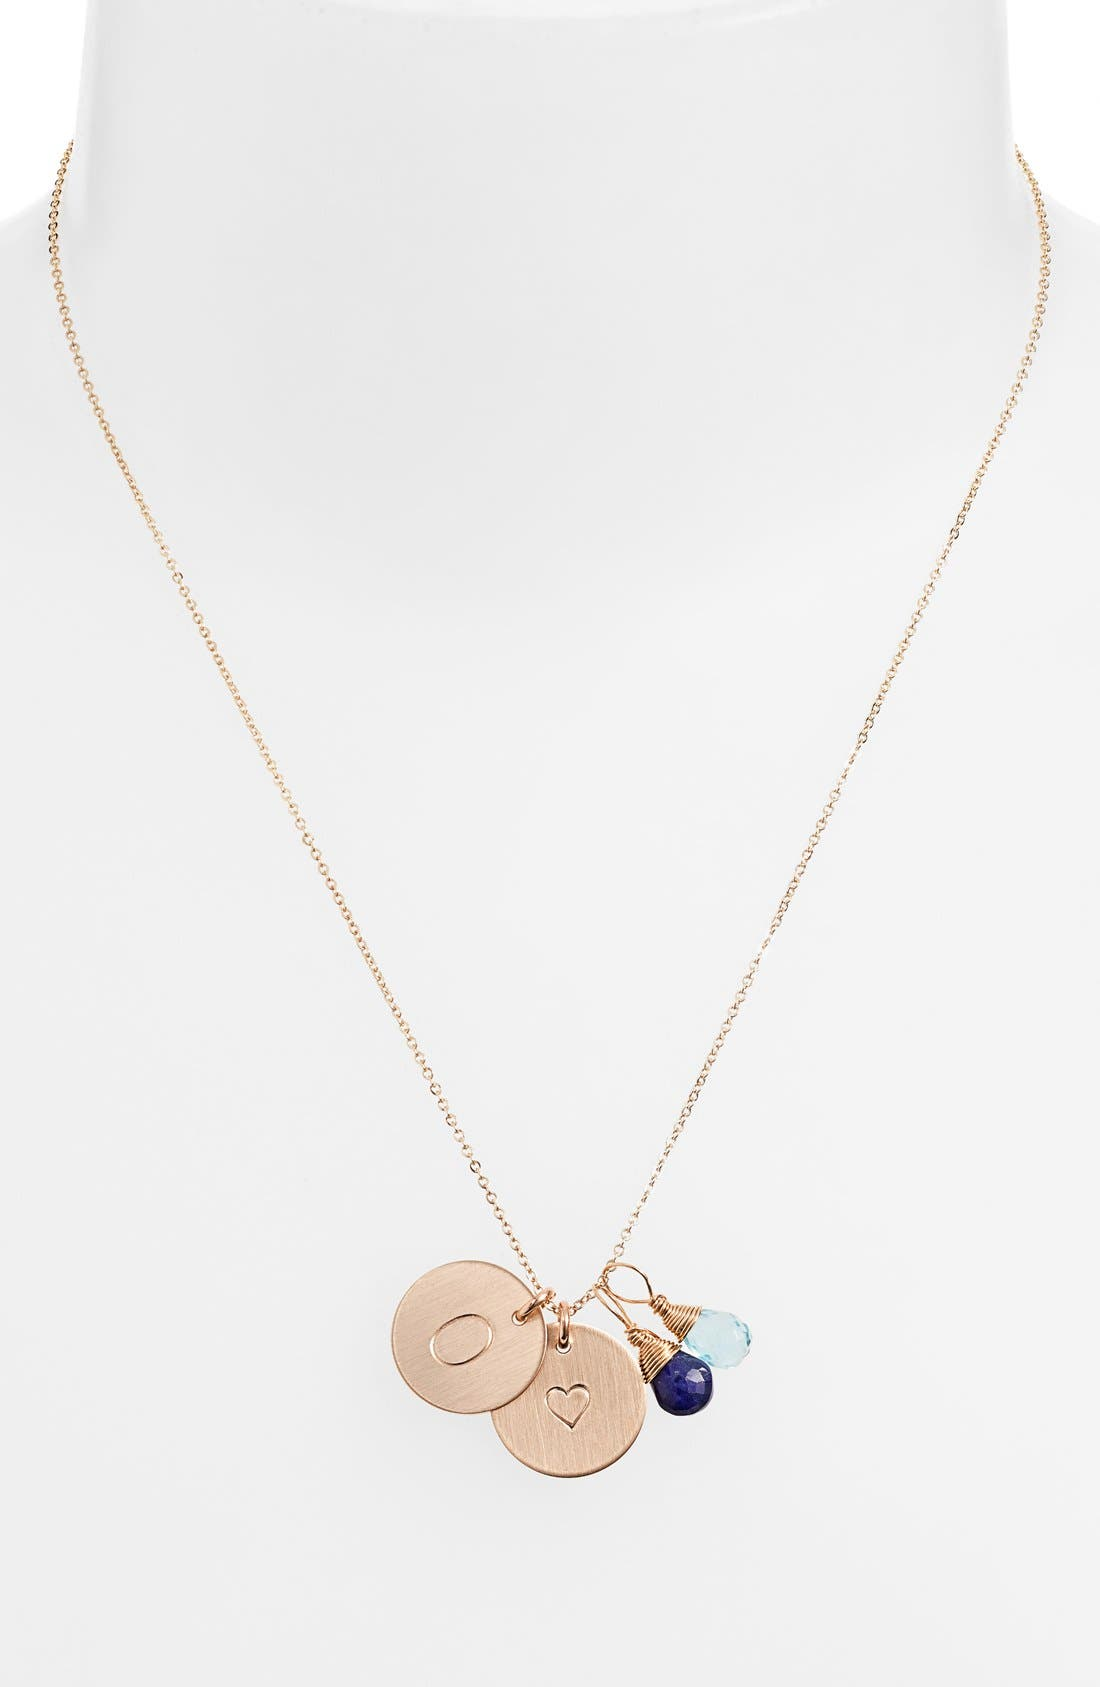 NASHELLE, Blue Quartz Initial & Heart 14k-Gold Fill Disc Necklace, Alternate thumbnail 2, color, ROYAL BLUE AND OCEAN BLUE O